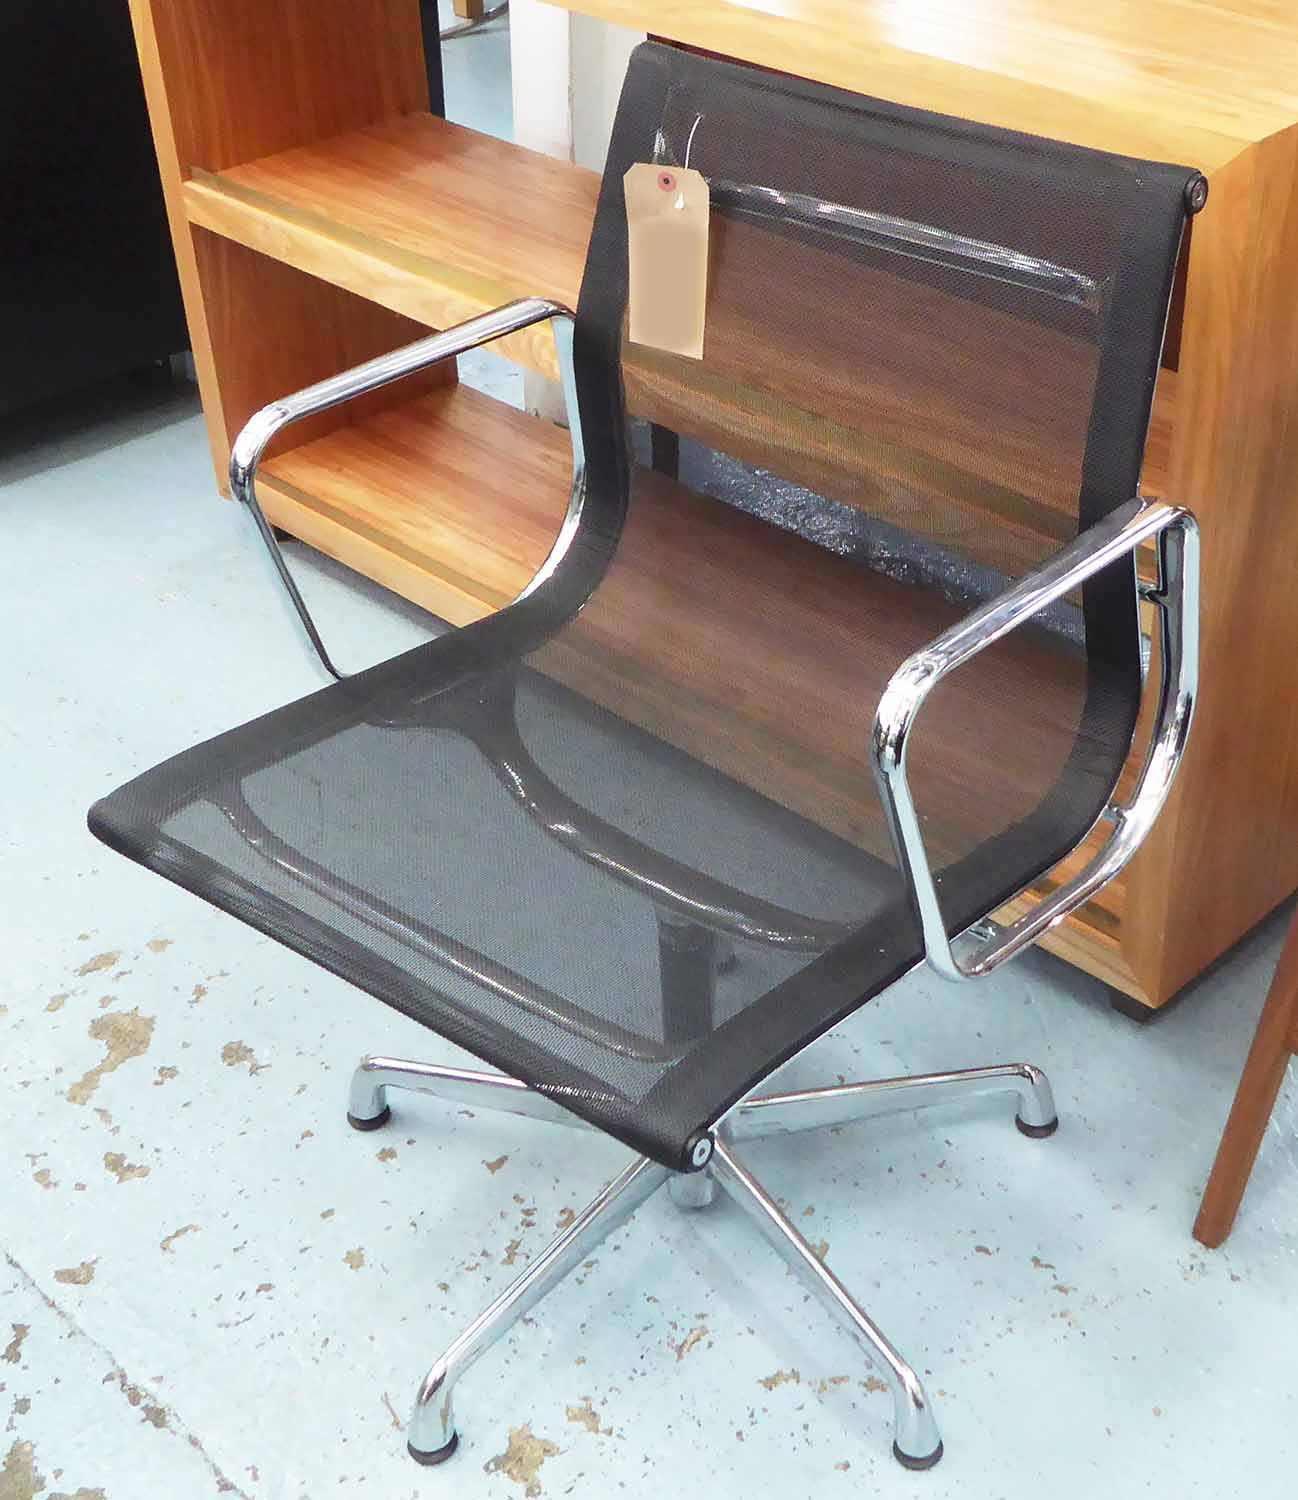 Lot 49 - VITRA ALUMINIUM GROUP DESK CHAIR, by Charles and Ray Eames, 58cm W.